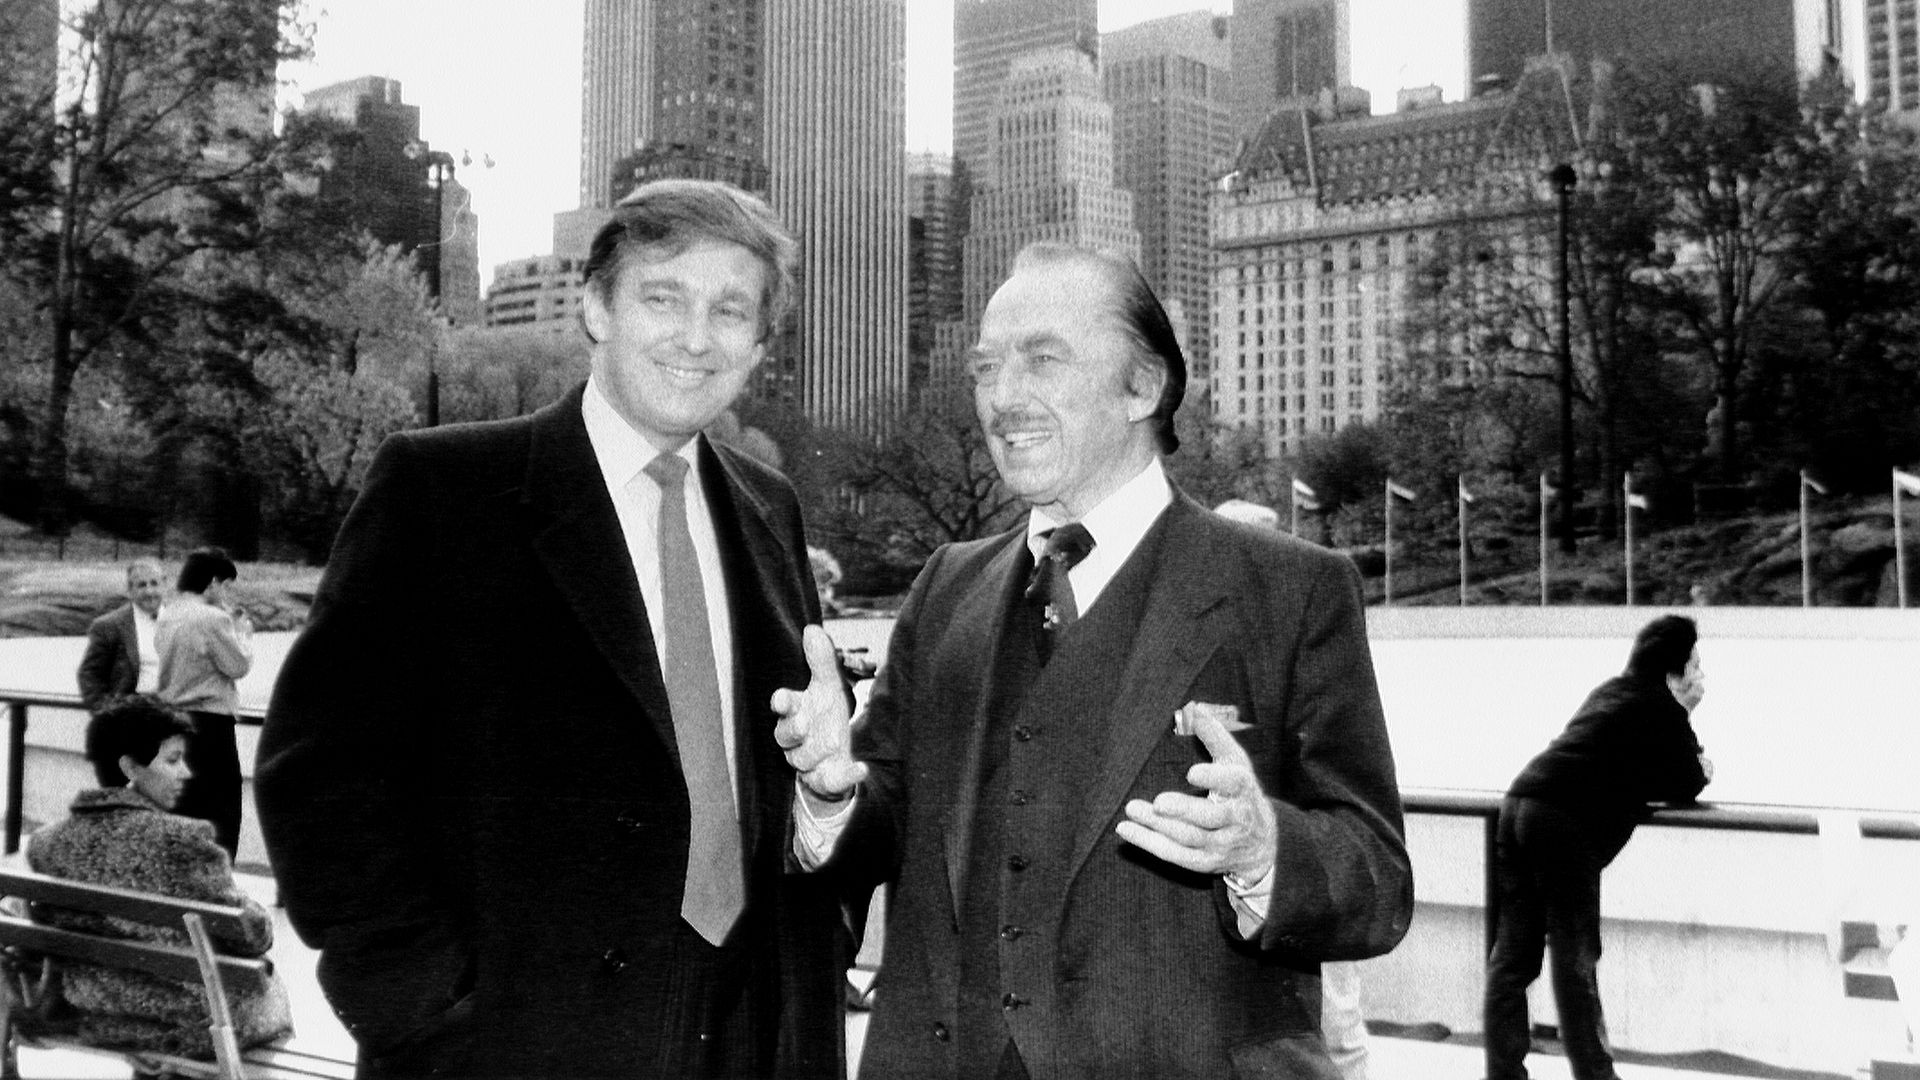 Donald Trump and father Fred Trump. Photo: Dennis Caruso/NY Daily News Archive via Getty Images